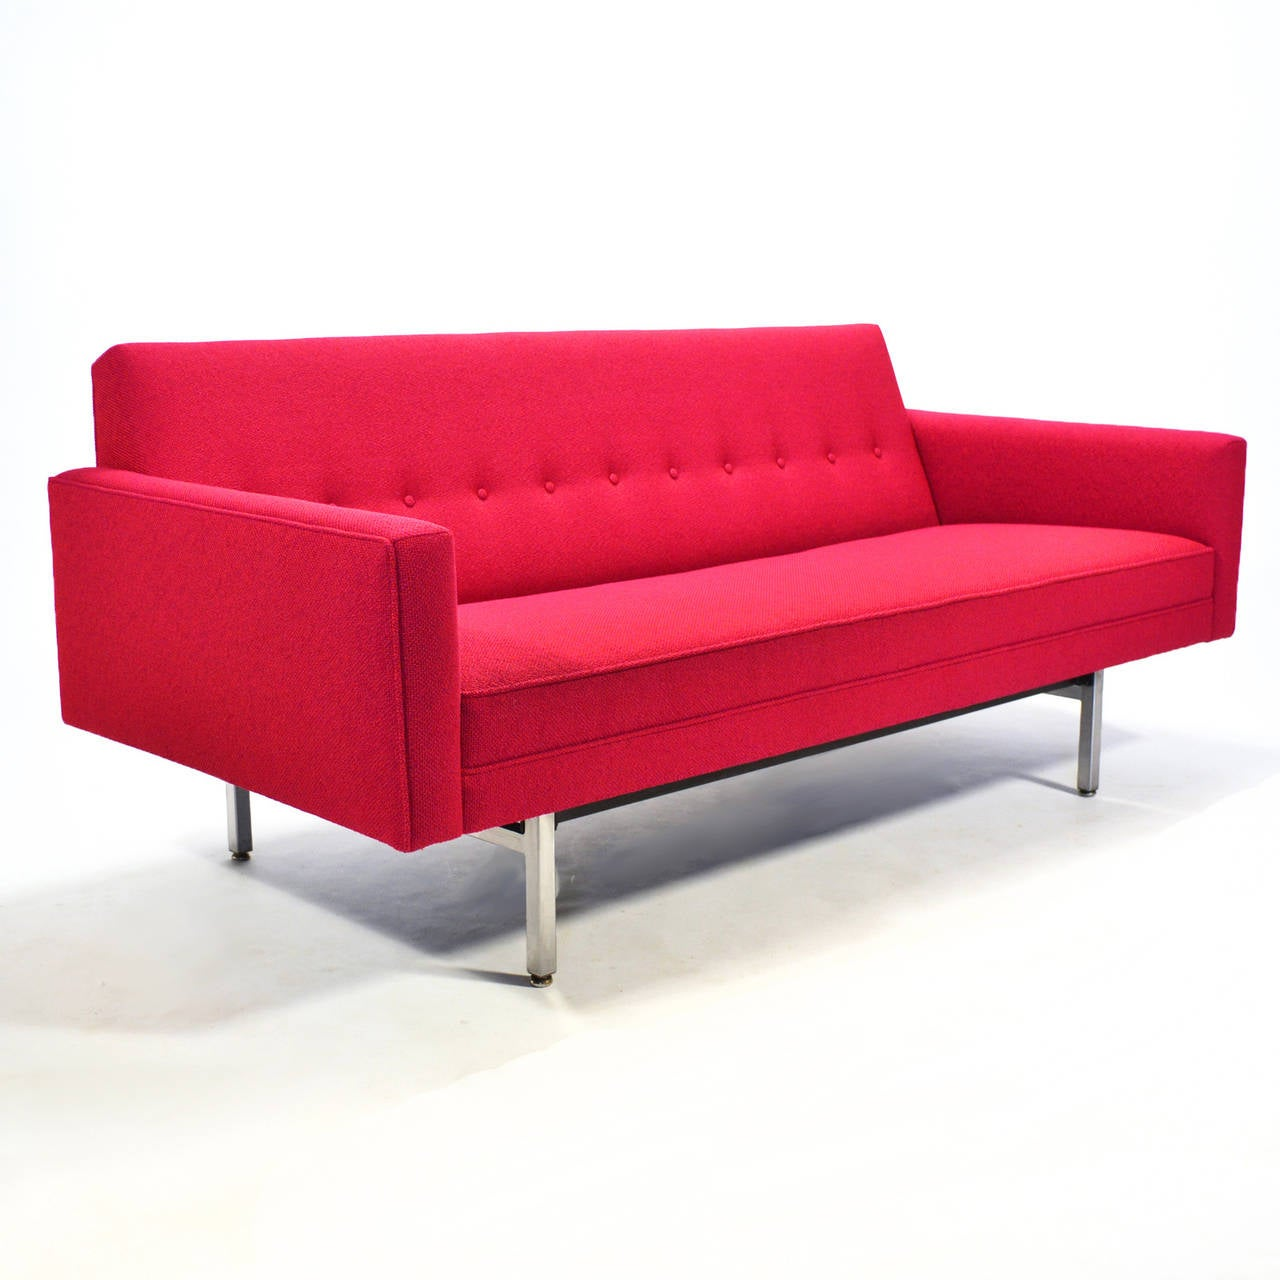 The modular seating group designed by the Nelson office in 1955 is one of our favorite sofa designs. It was designed on a 30